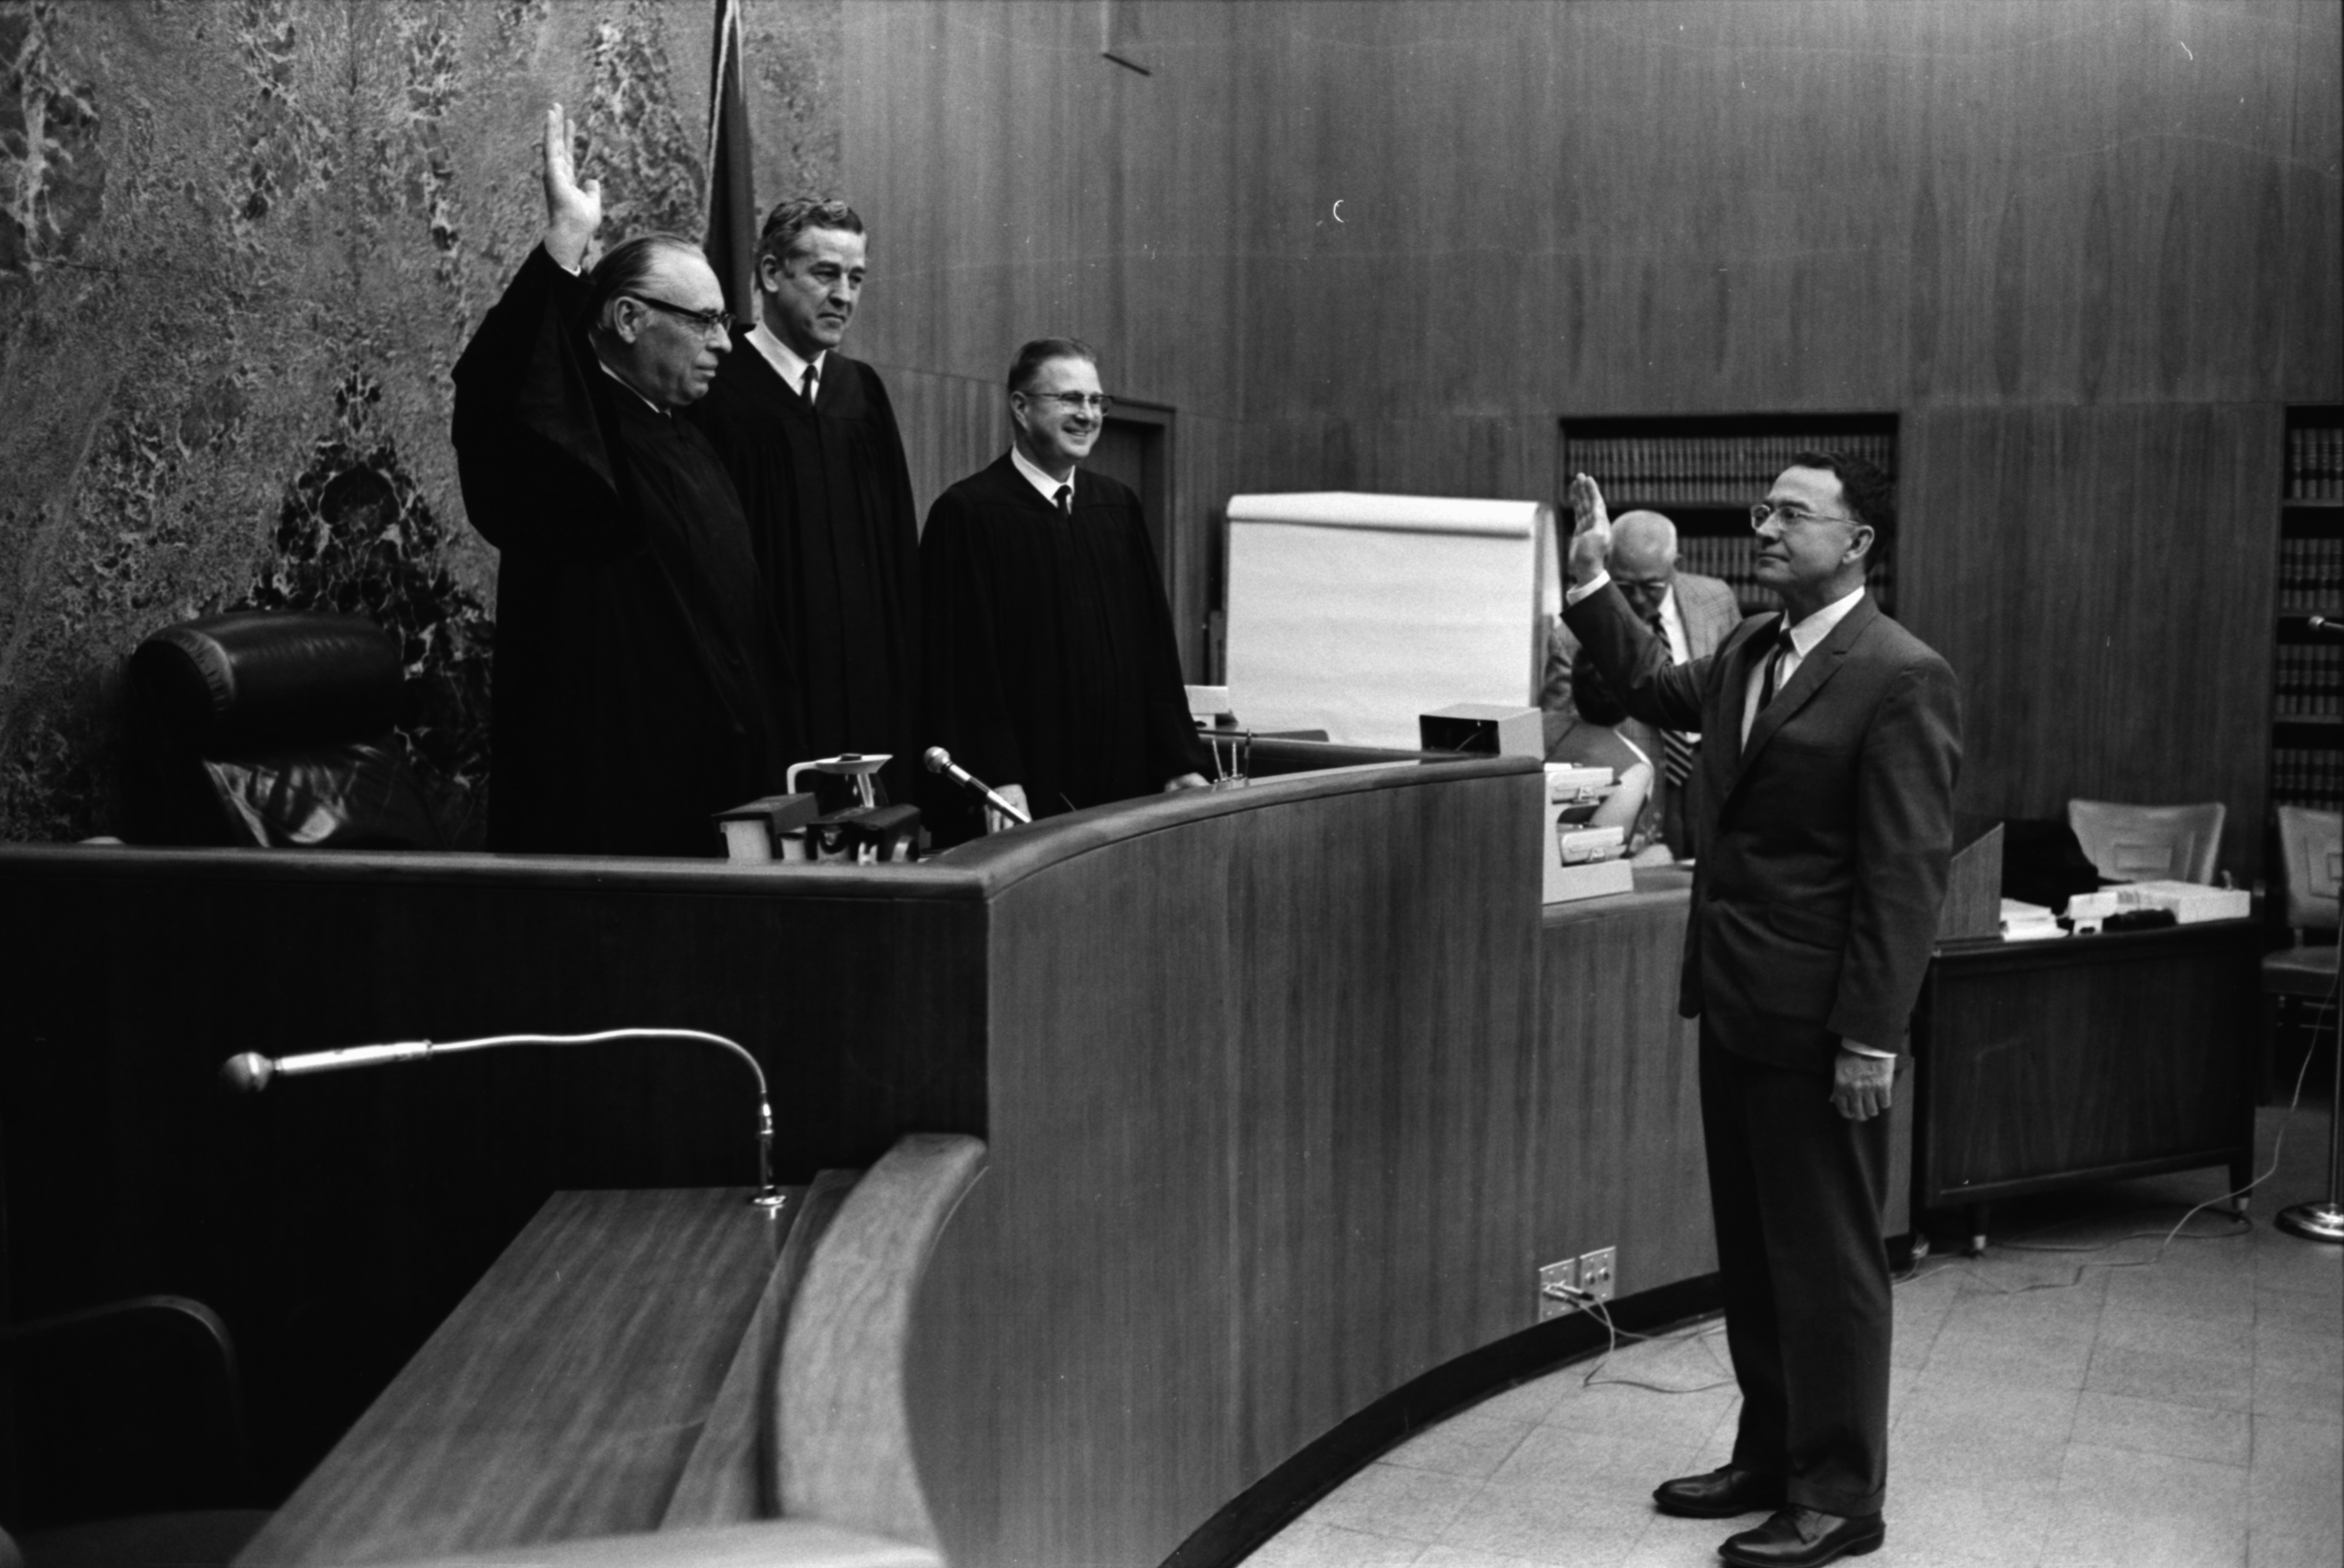 Probate Judge Takes Oath, June 1969 image